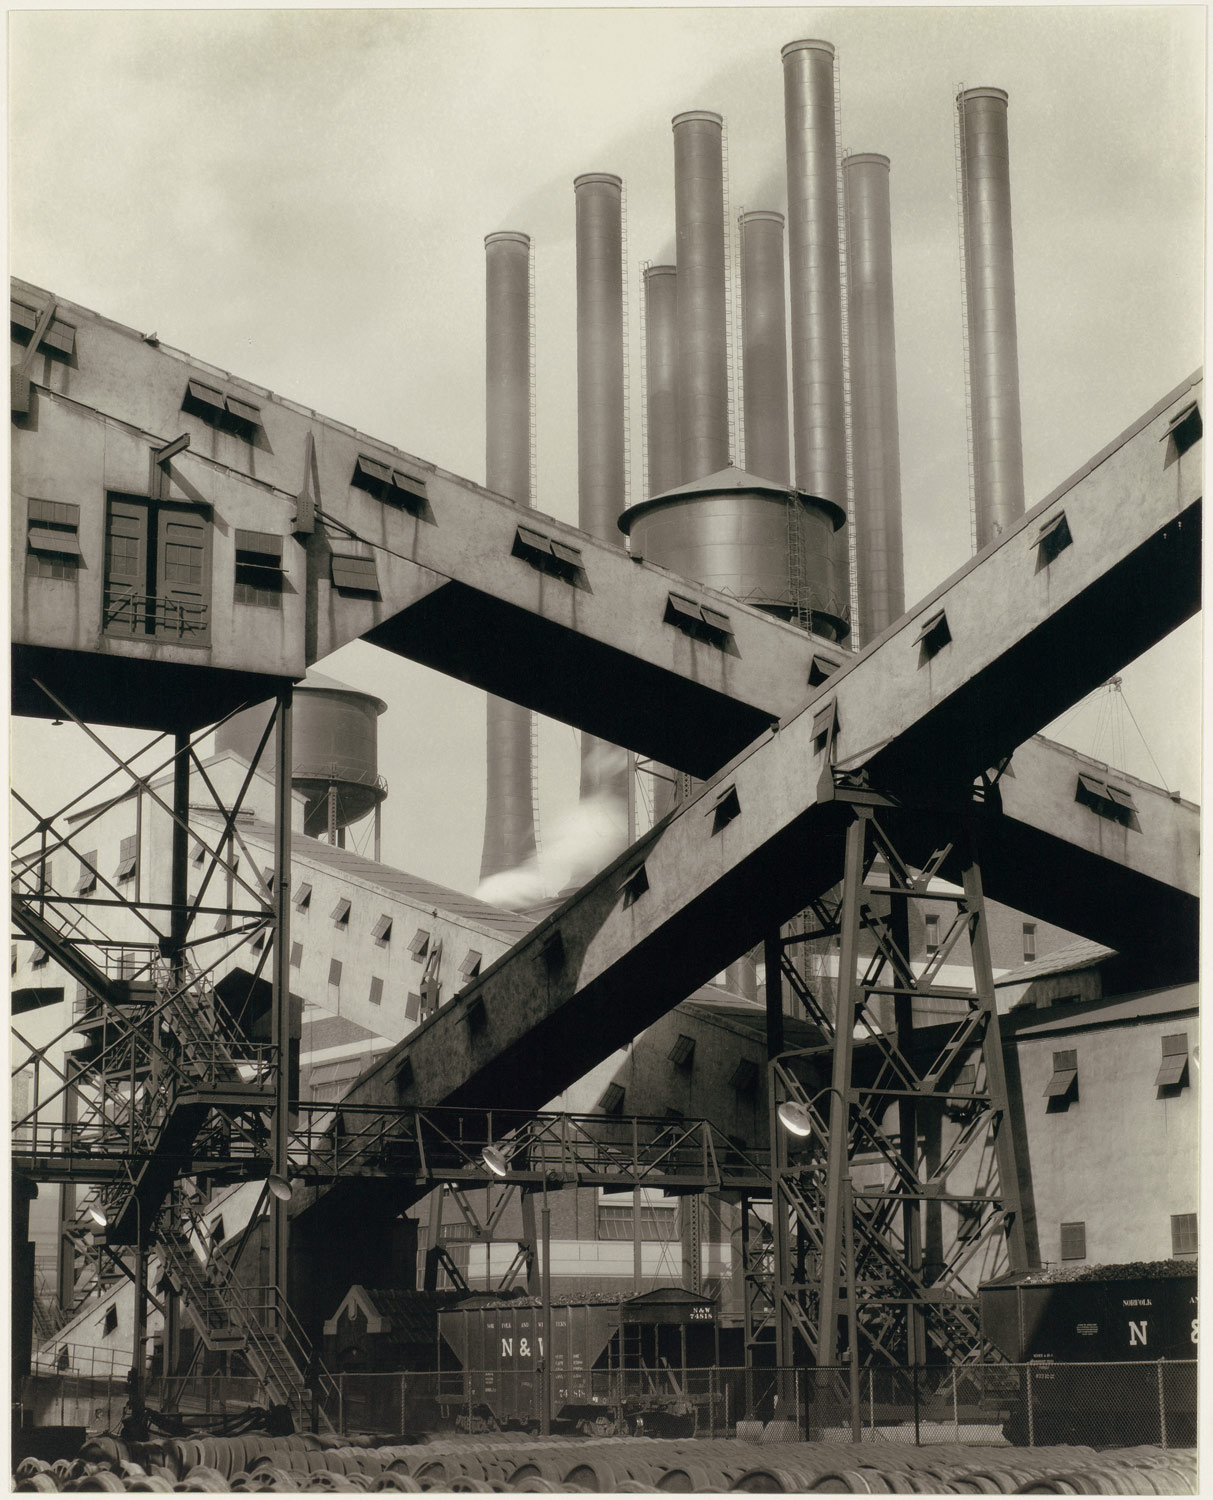 Criss-Crossed Conveyors, River Rouge Plant, Ford Motor Company - From The Met